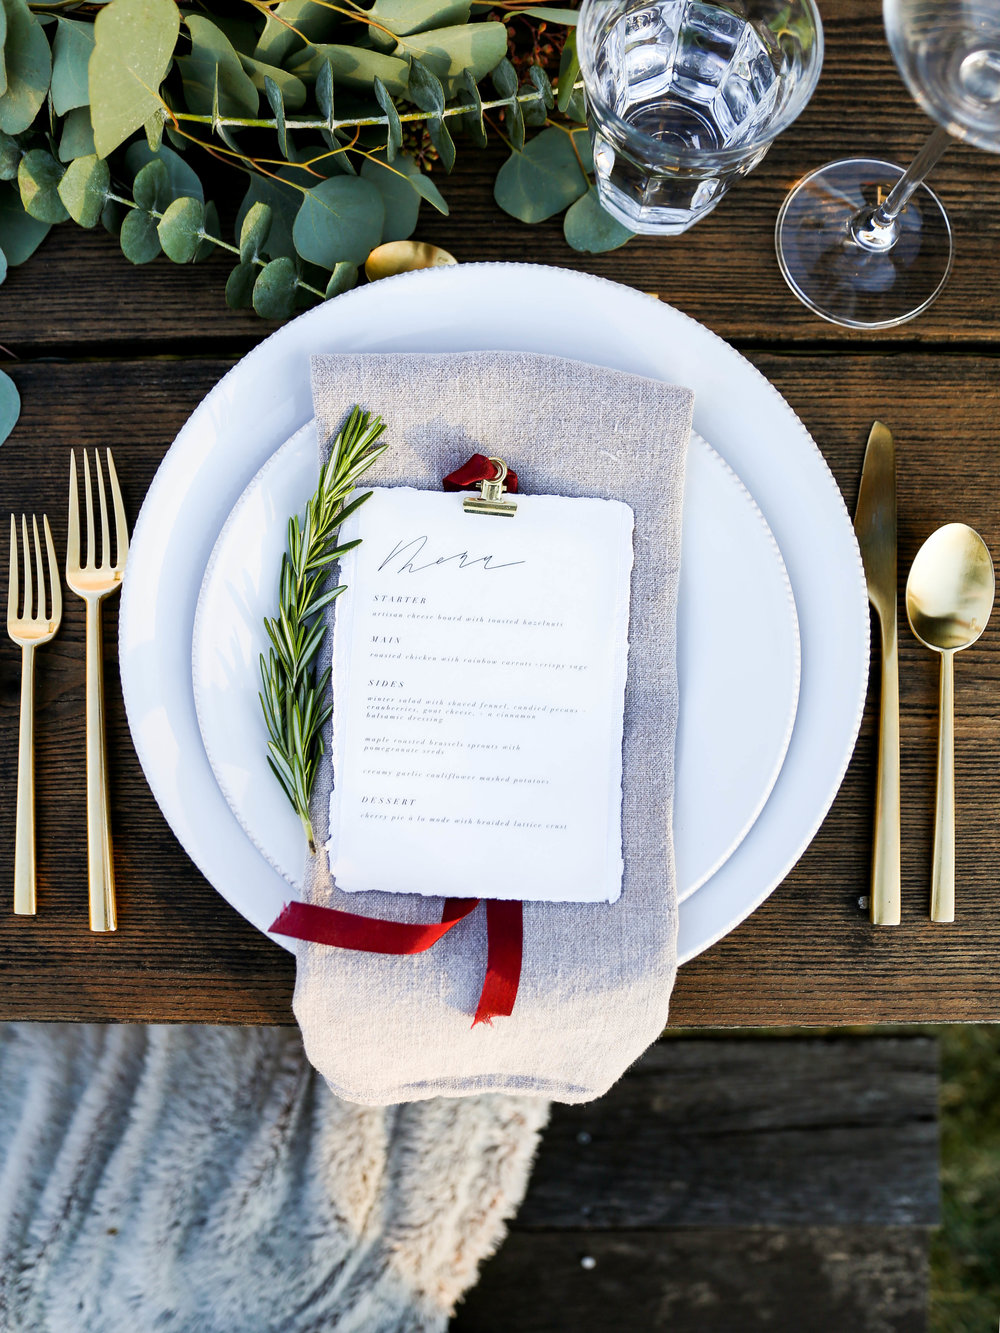 A Holiday Gathering with Feast + Fable | Jennifer Diaz | Holiday Recipes | Healthy Recipes | Christmas Dinner Menu | Friendsgiving | Cauliflower Mashed Potatoes | Candied Pecans | Winter Salad | Pomegranate Brussels Sprouts | Paper goods by Amy May Paper